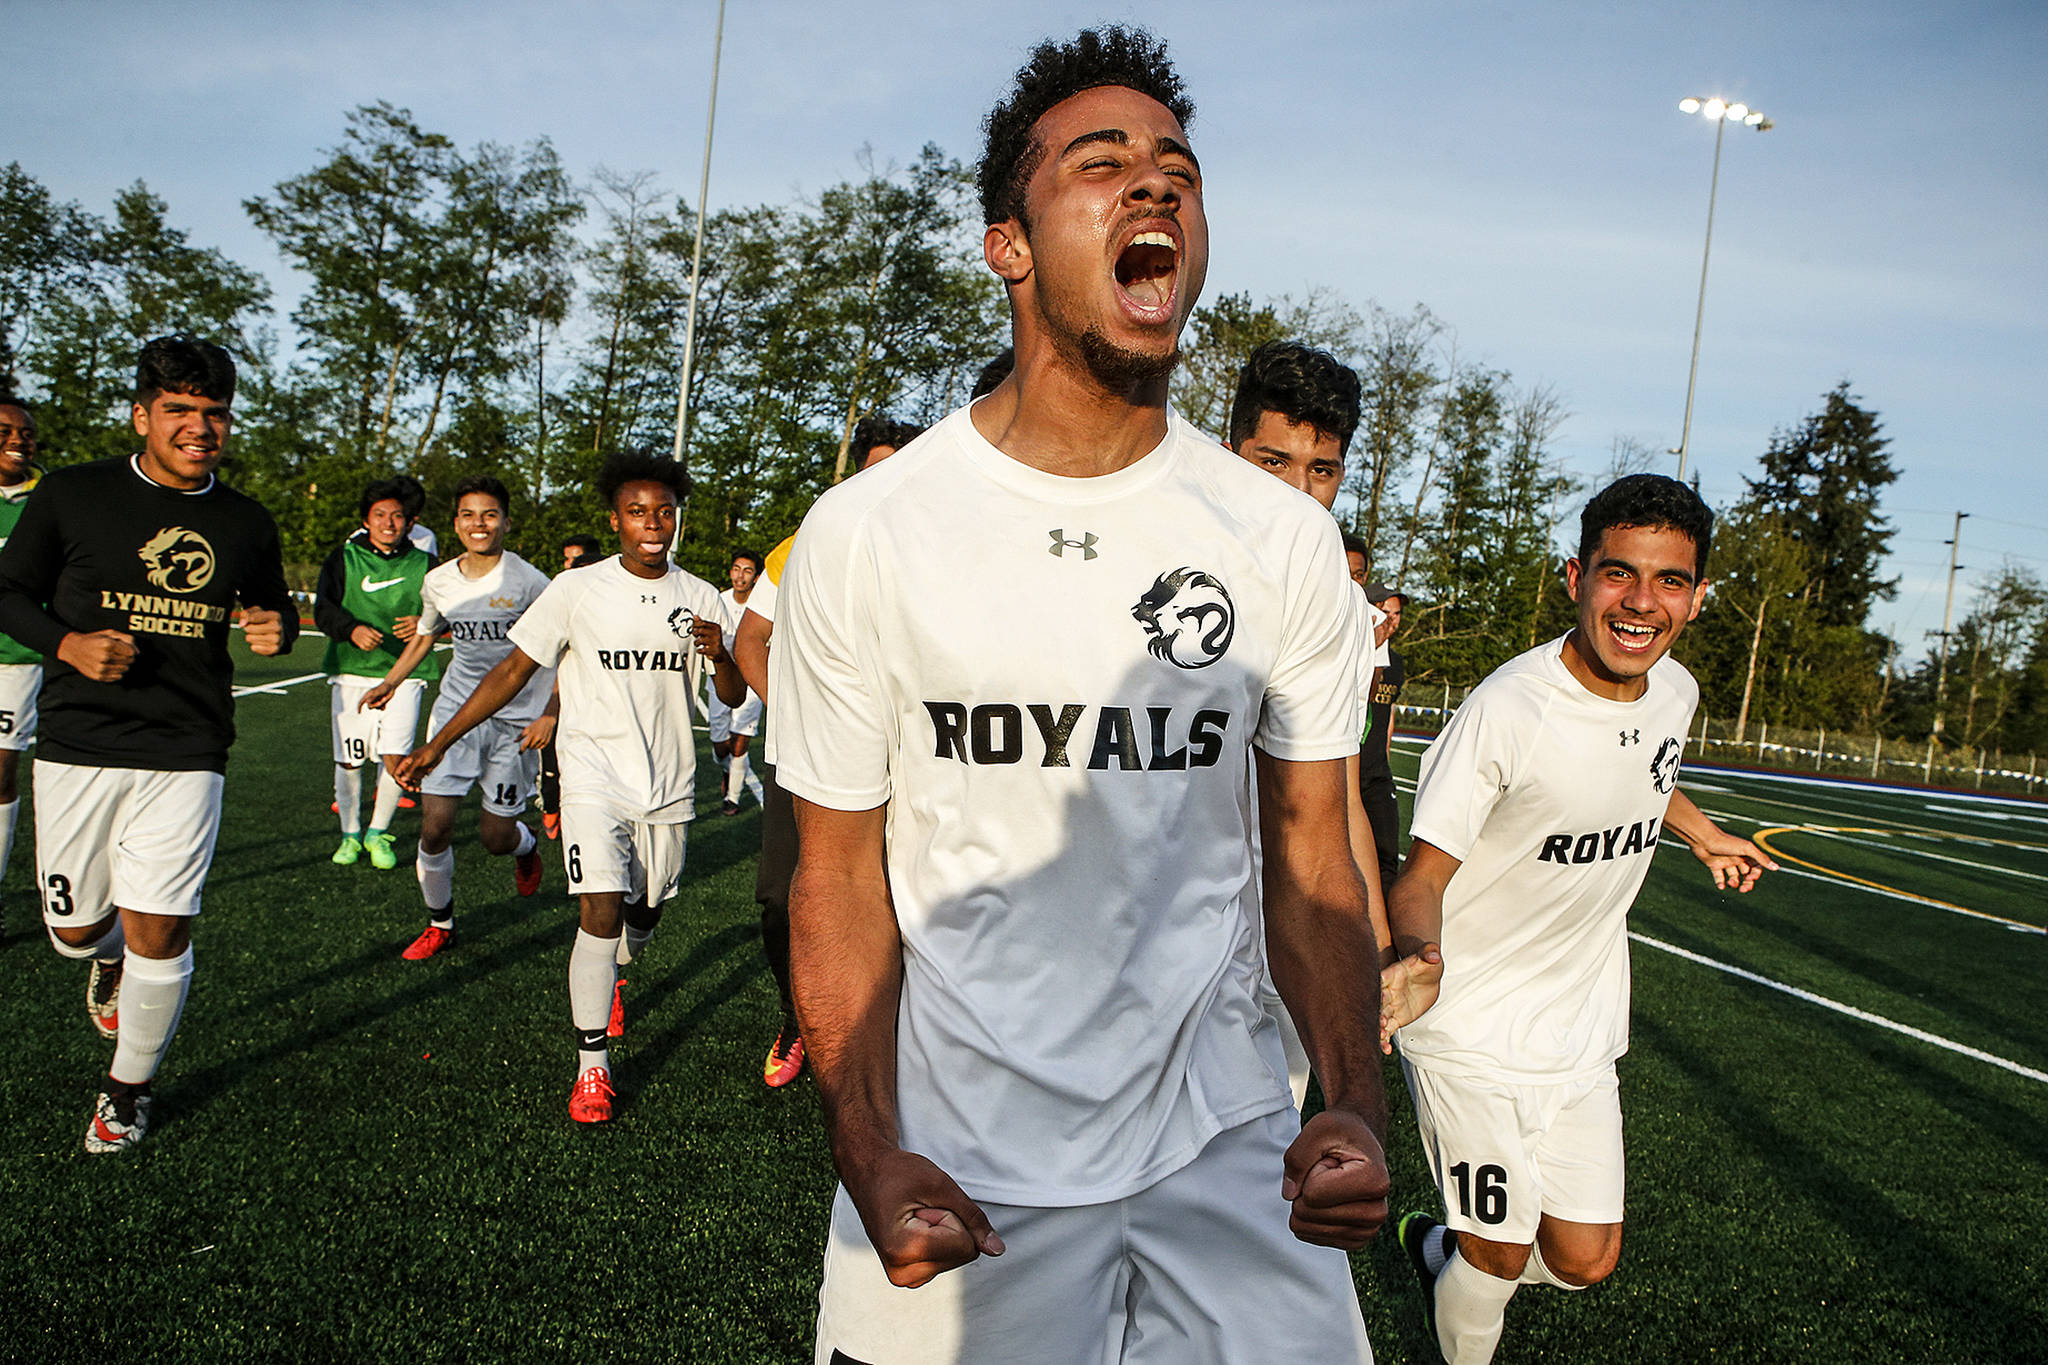 Lynnwood's Ryley Johnson celebrates a 2-1 victory over Squalicum in a 3A District 1 Tournament semifinal game on May 9, 2017, at Shoreline Stadium. Johnson scored the go-ahead goal in the second half of the match. (Ian Terry / The Herald)